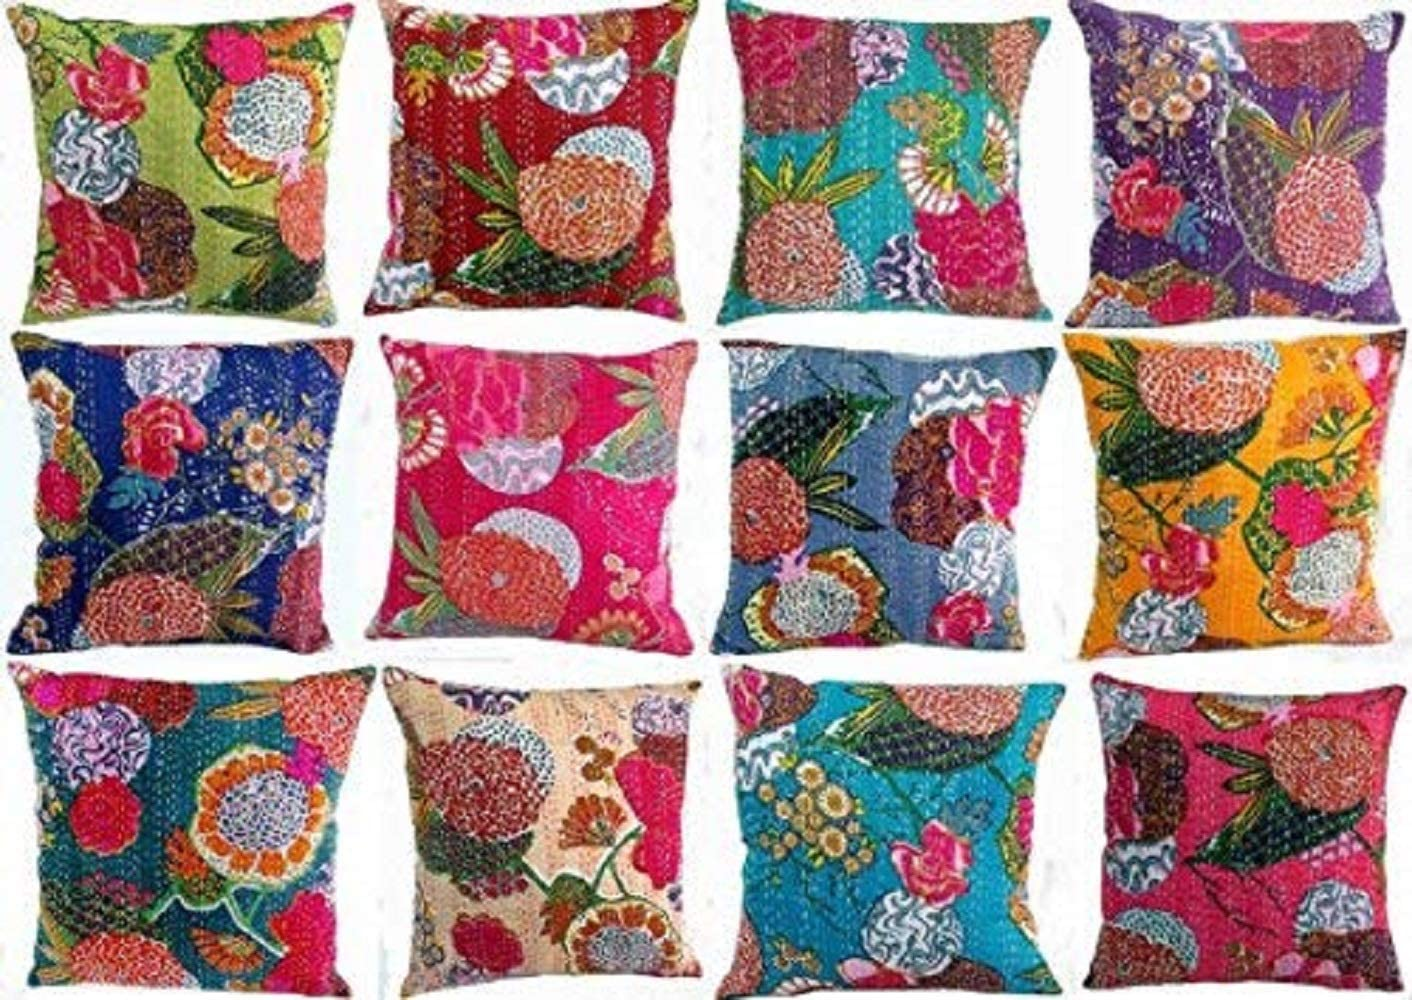 Throw Pillow cover,Kantha Pillow Case,16 x 16,18 x 18,20 x 20,24 x 24,Square pillow cover,Decorative cushion cover,Home gift